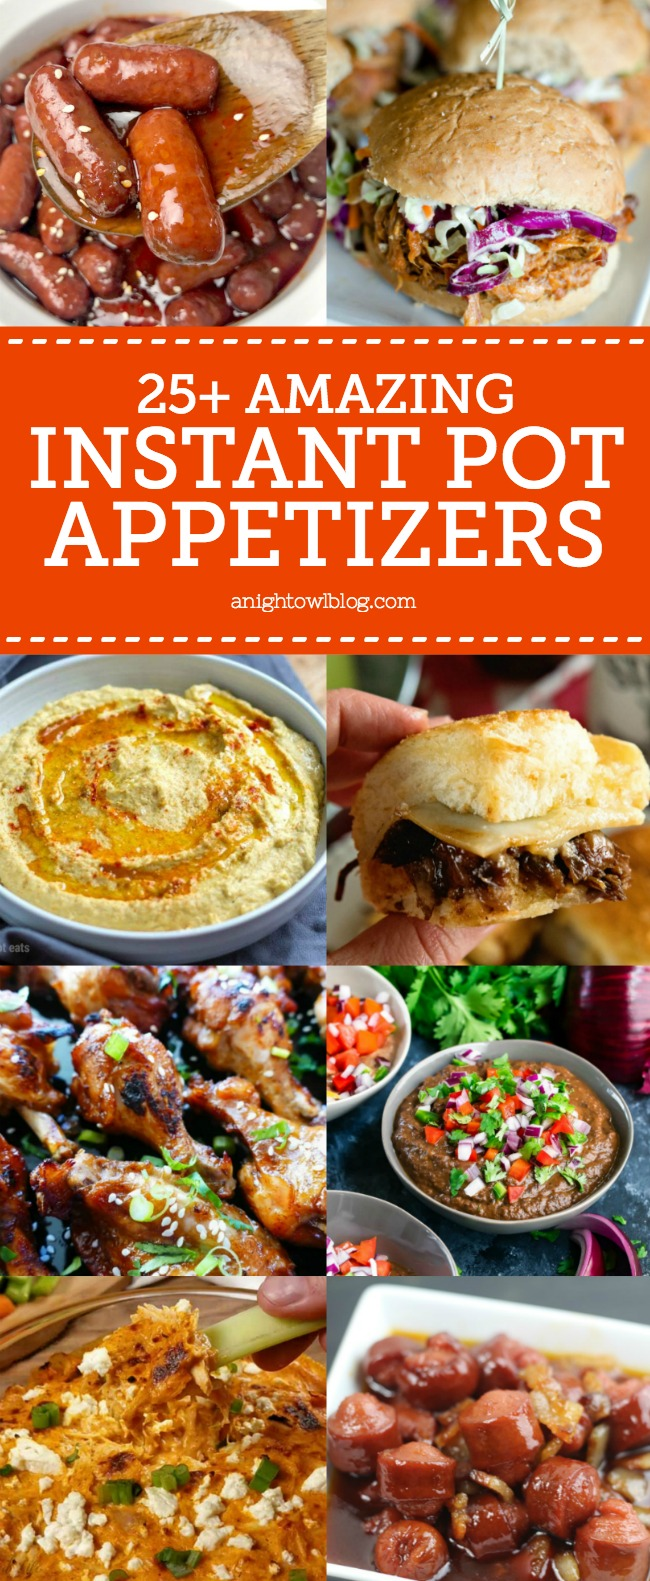 From BBQ Pulled Pork Sliders to Lil Smokies, discover over 25 Instant Pot Appetizer Recipes perfect for game day or your next get together!